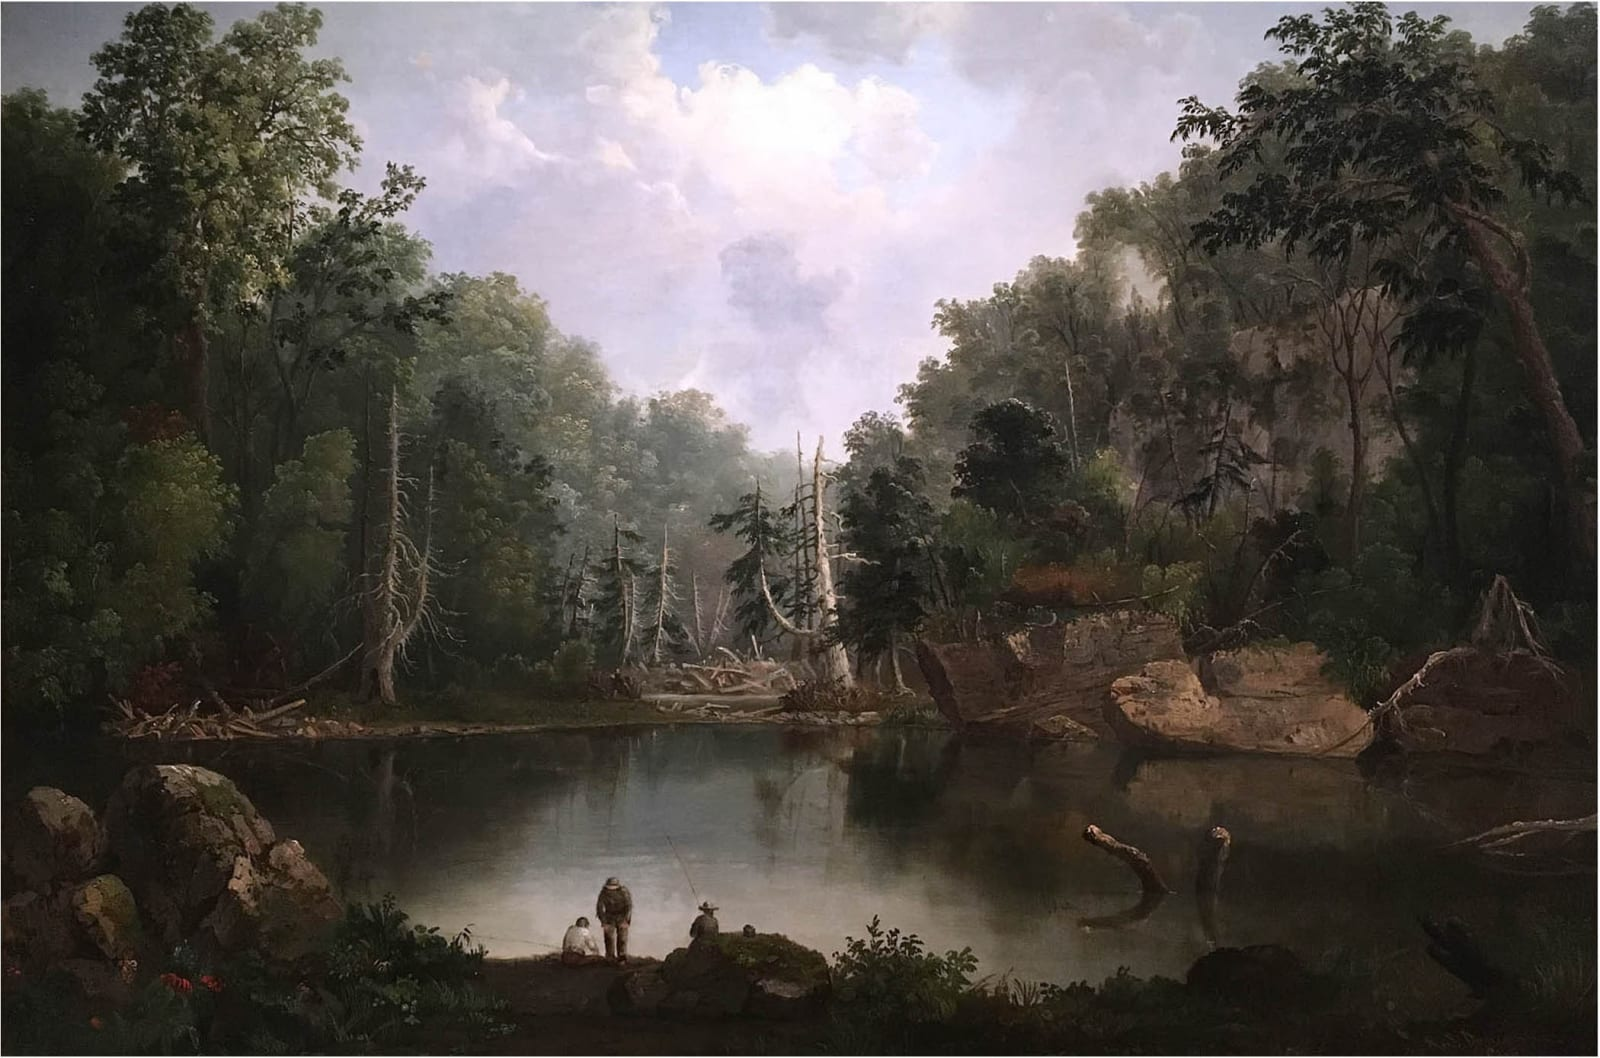 Robert S. Duncanson Blue Hole, Flood Waters, Little Miami River 1851 Oil on Canvas 29 1/4 x 42 1/4 inches Cincinnati Art Museum, gift of Norbert Heerman and Arthur Helbig